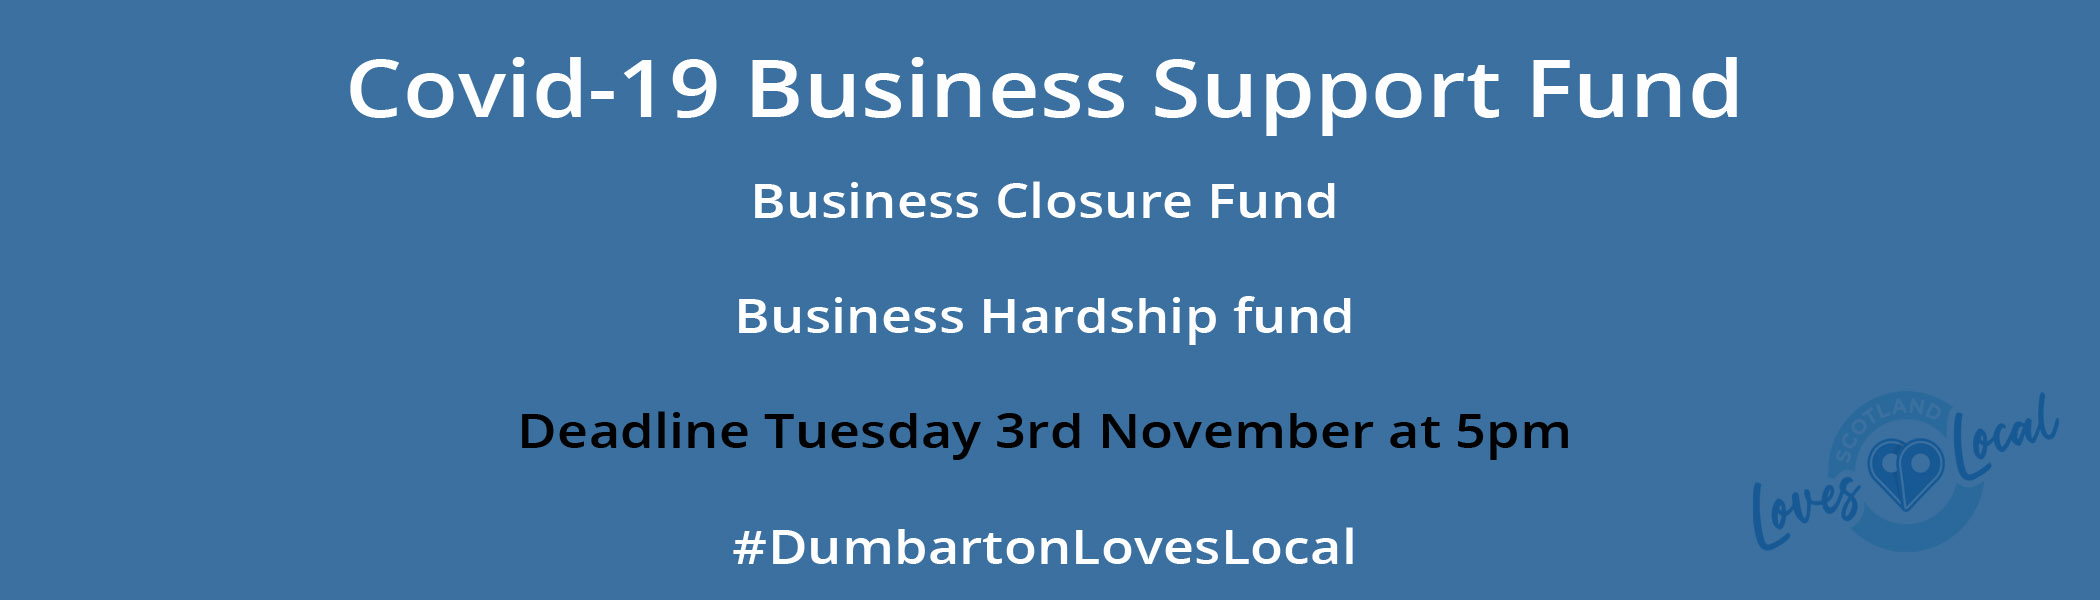 Dumbarton Covid-19 Business Support Fund